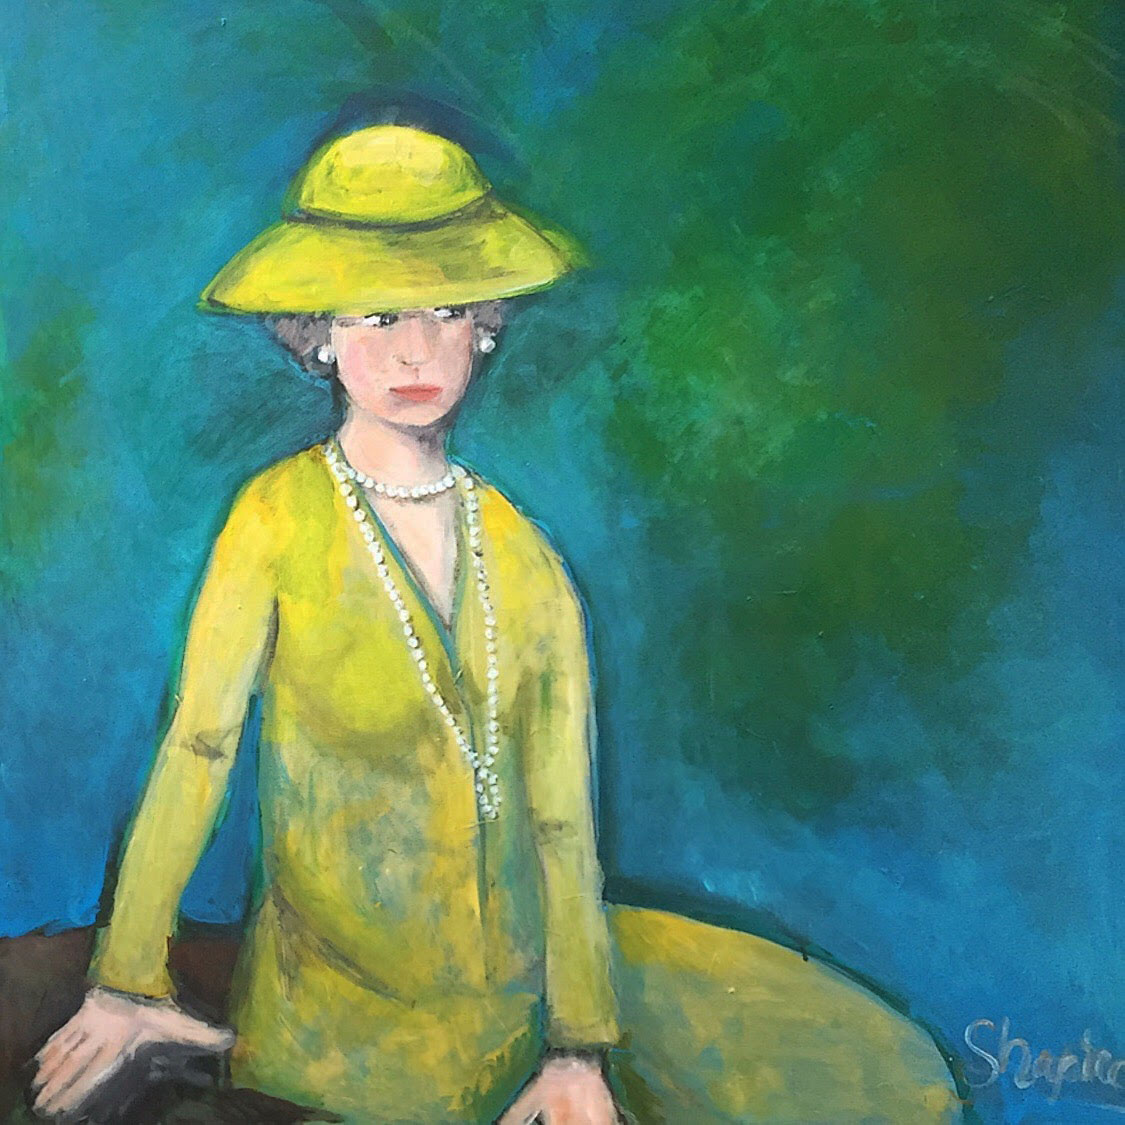 26a. lady with a yellow hat